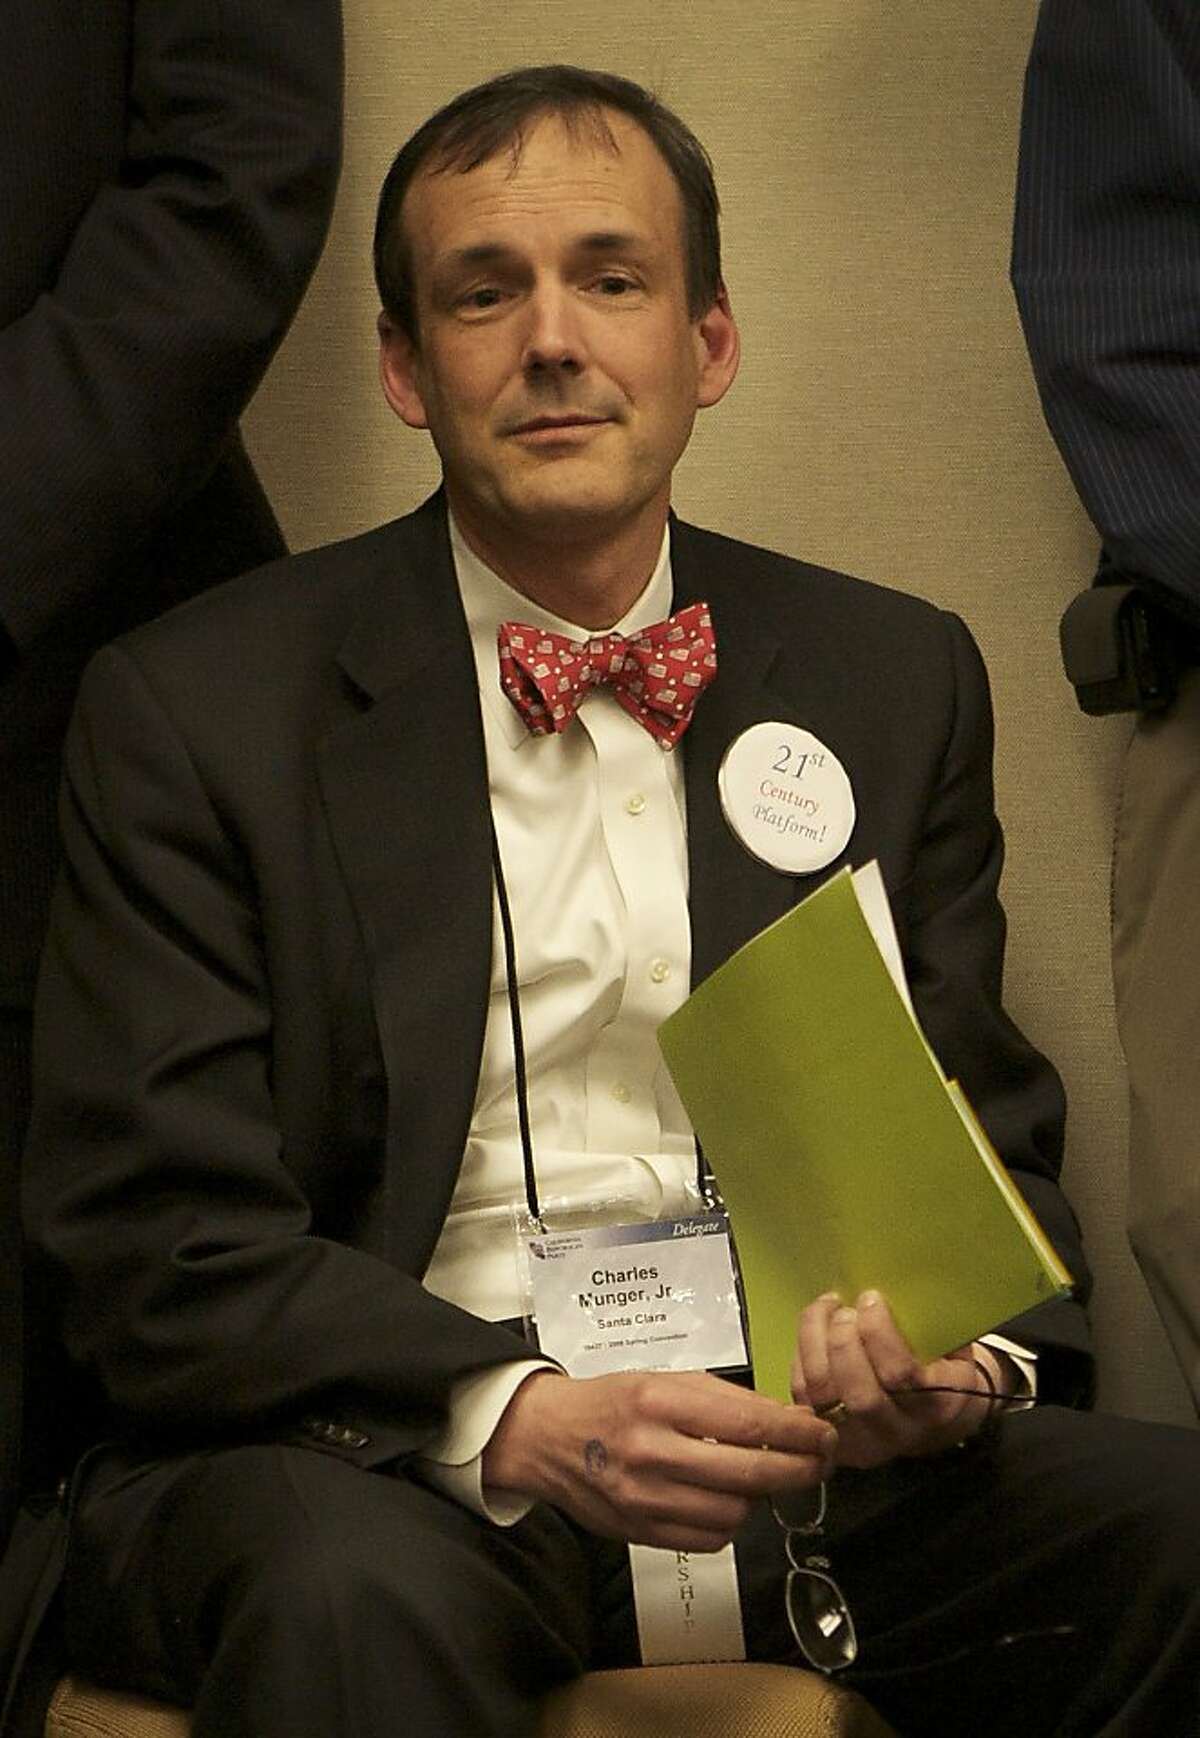 Charles Munger Jr. of Santa Clara, center with bow tie, listens to debate in the Platform committee on day one of the California Republican Party convention held at the Hyatt in San Francisco, Friday Feb. 22, 2008. (Sacramento Bee/ MCT/ Brian Baer)